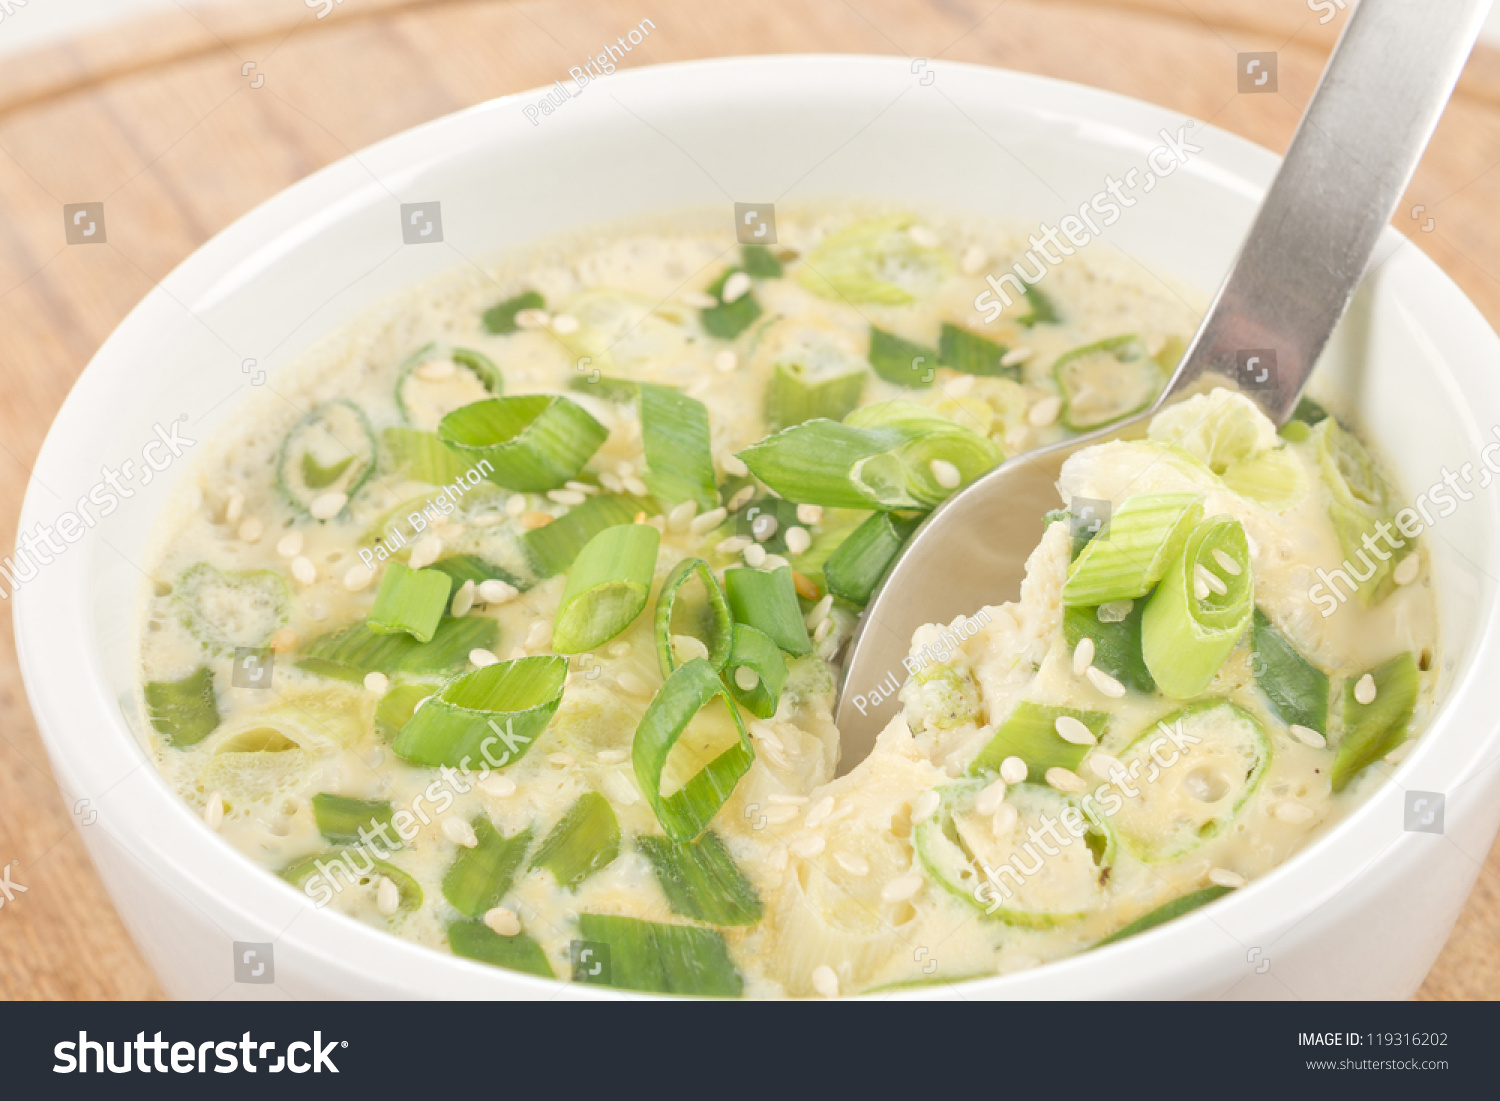 Gaeran Jim Korean Steamed Egg Casserole With Spring Onions And Sesame Seeds